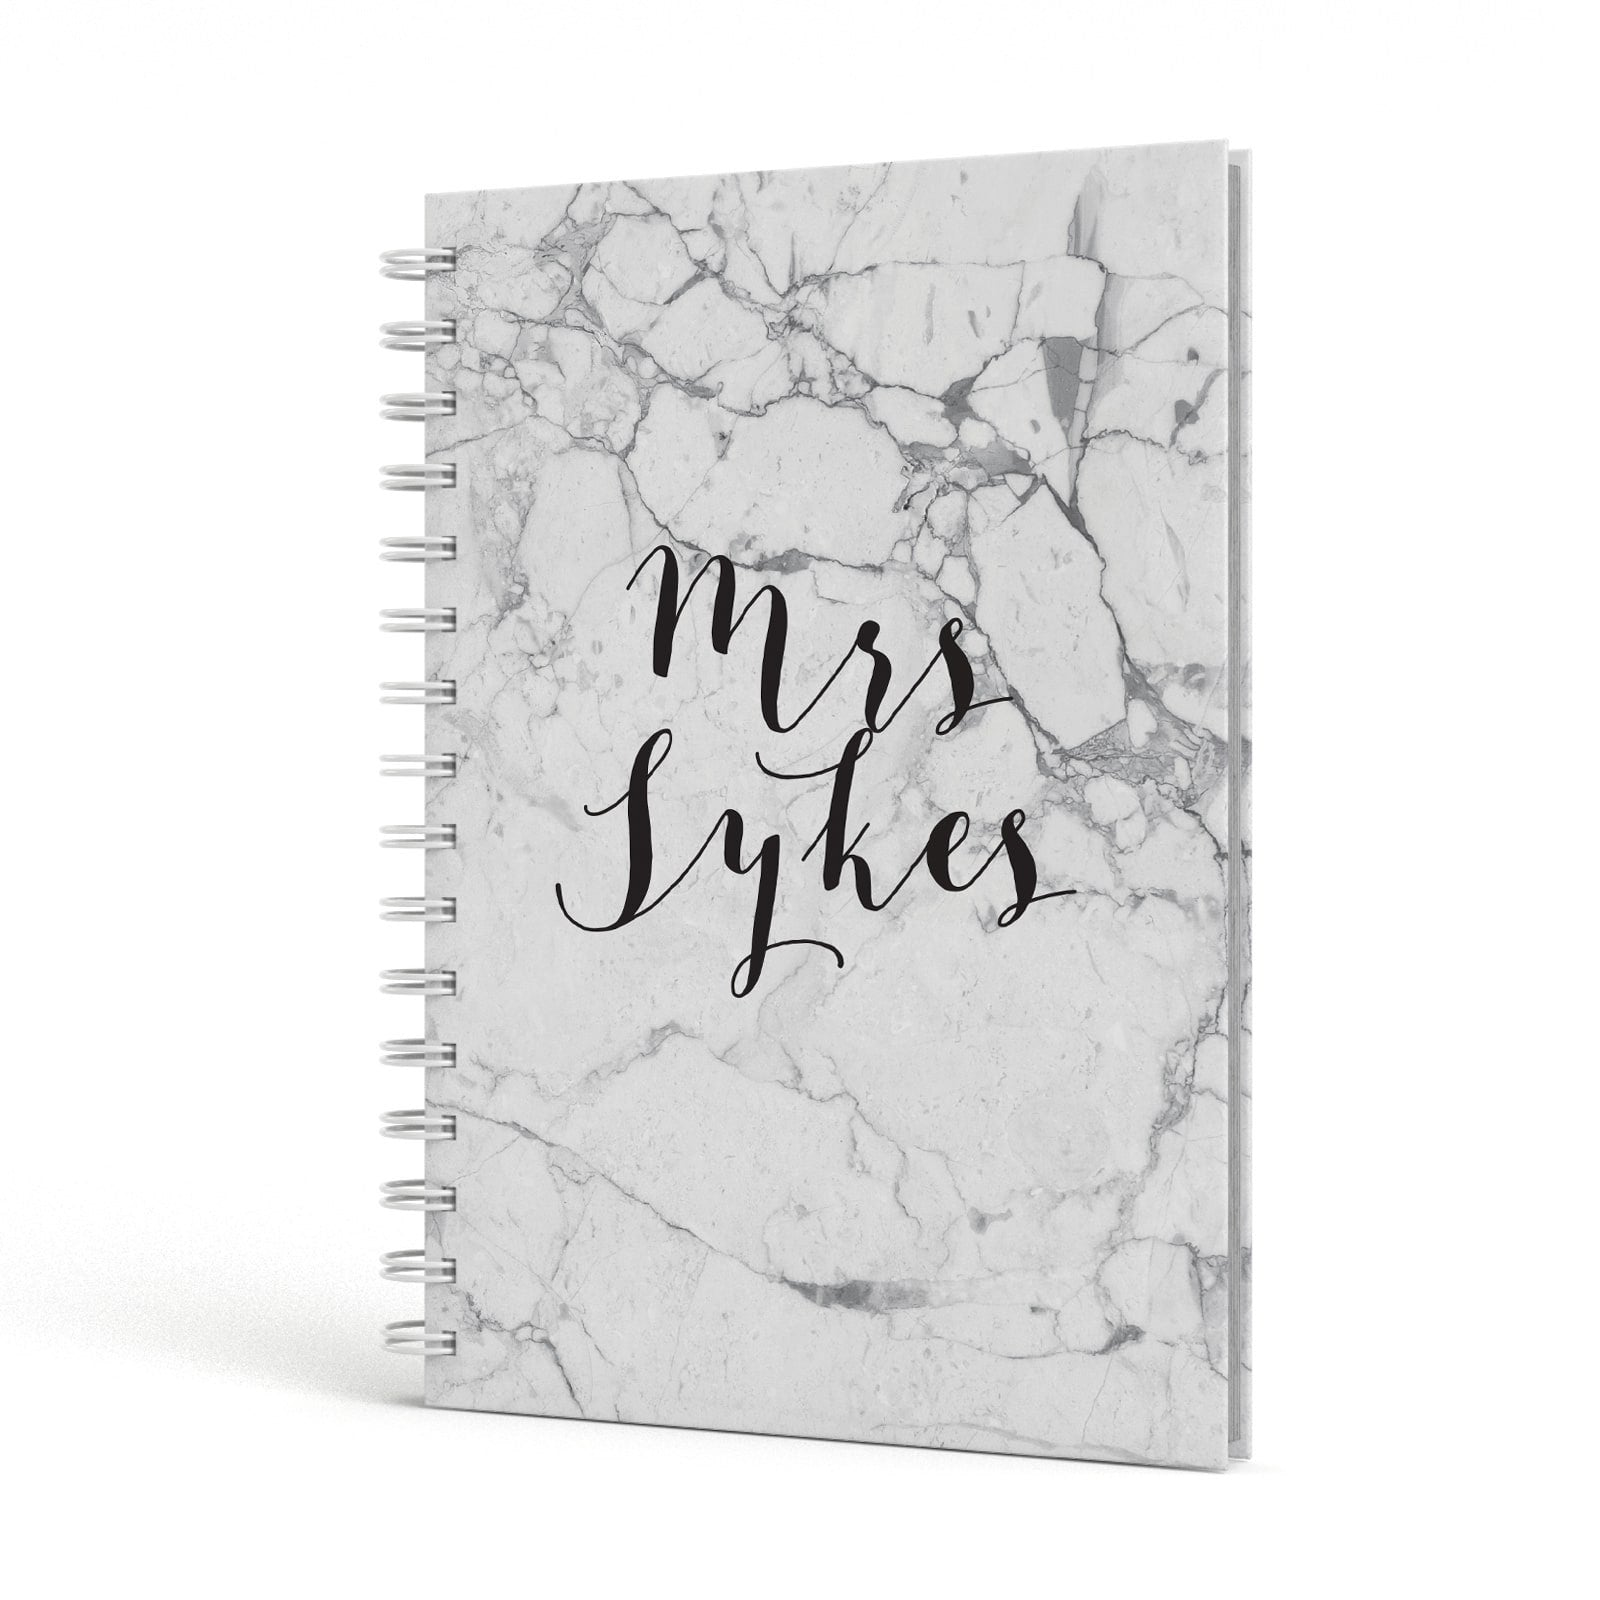 Surname Personalised Marble A5 Hardcover Notebook Side View